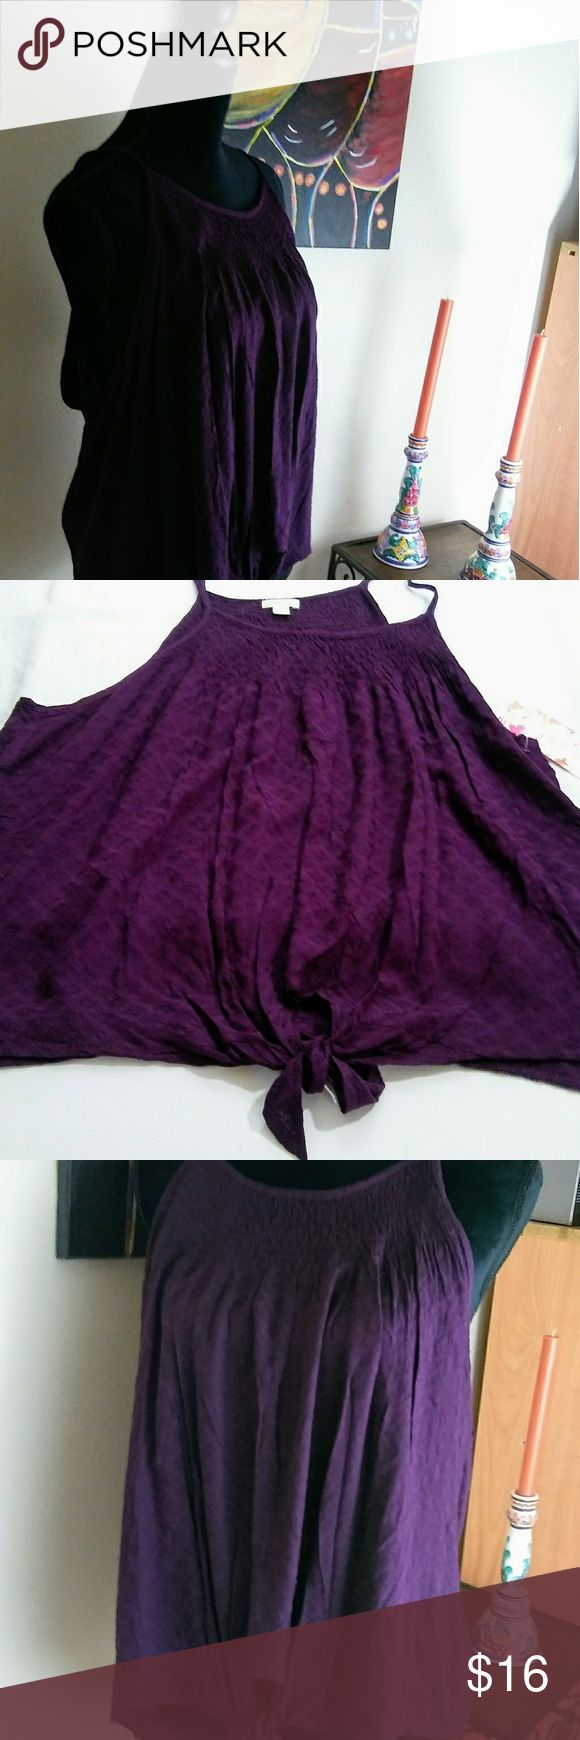 "Wild Pearl Tie Front Smocked Cami Purple Plum .Scoop neck - Sleeveless - Smocked neck trim - Front tie closure - Allover patterned detail - Approx. 24"" length (size S) - Imported fiber Content100% rayon Tops Camisoles"